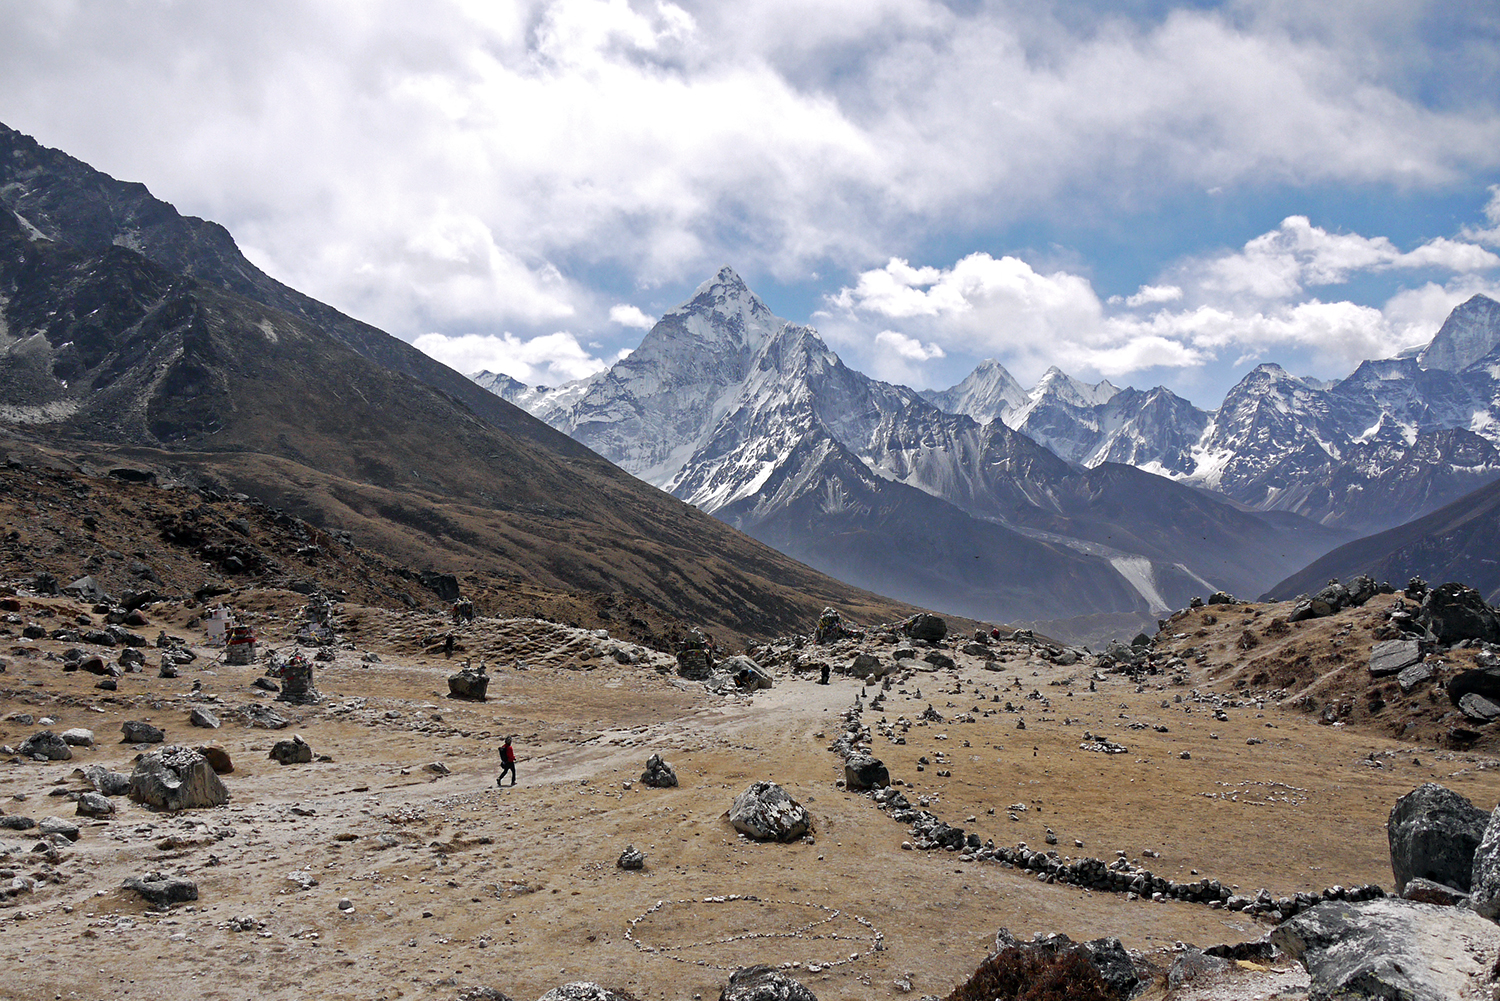 Vast and barren valleys mark the trail from Lukla to Gorak Shep